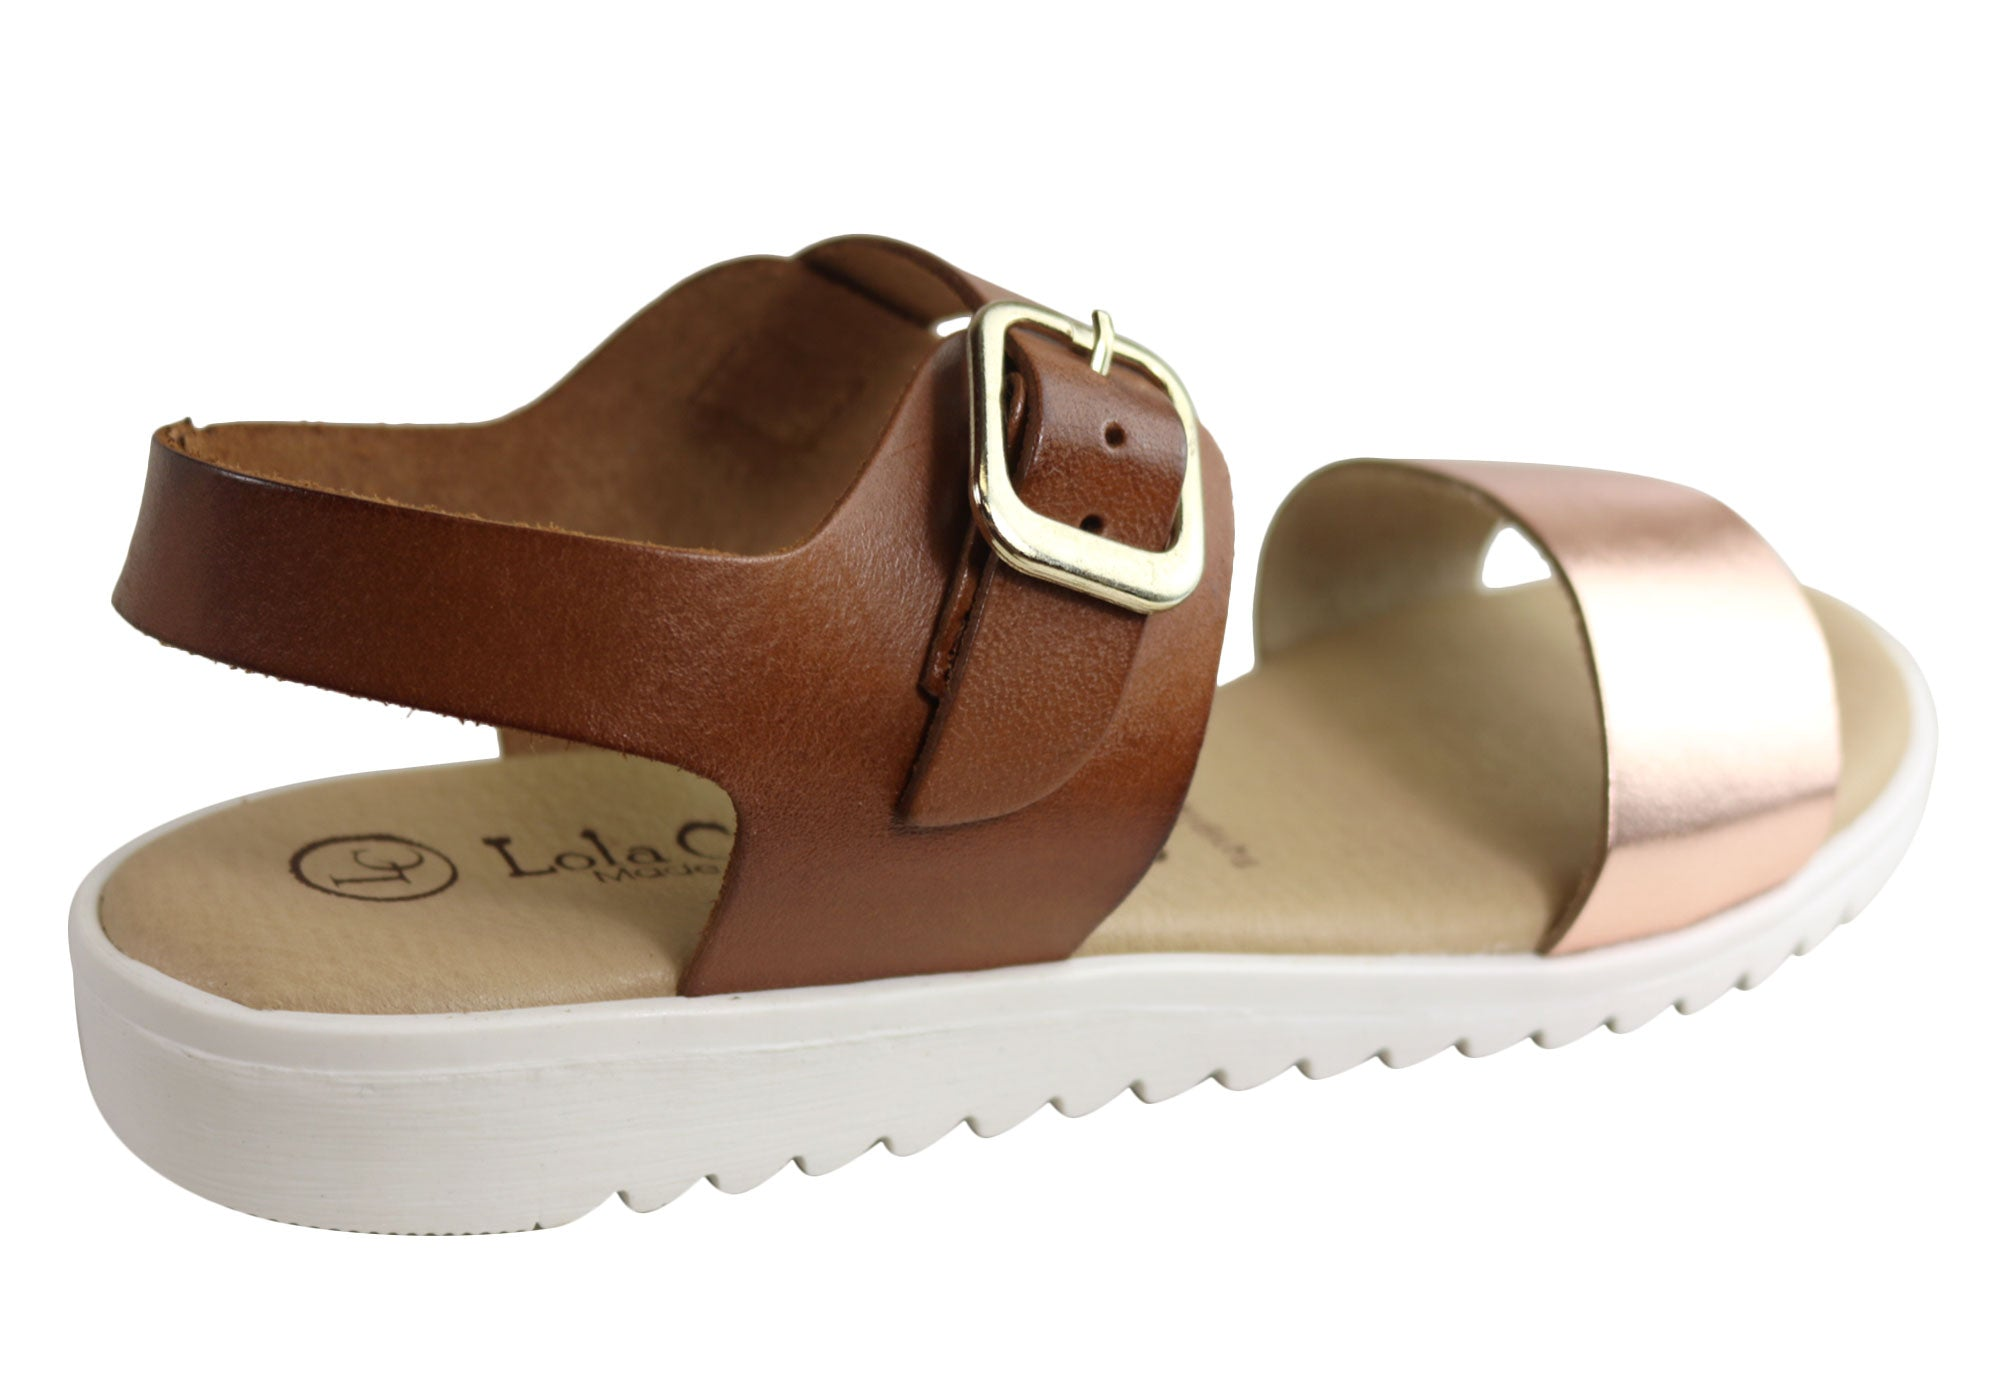 Lola Canales Esta Womens Comfortable Leather Sandals Made In Spain